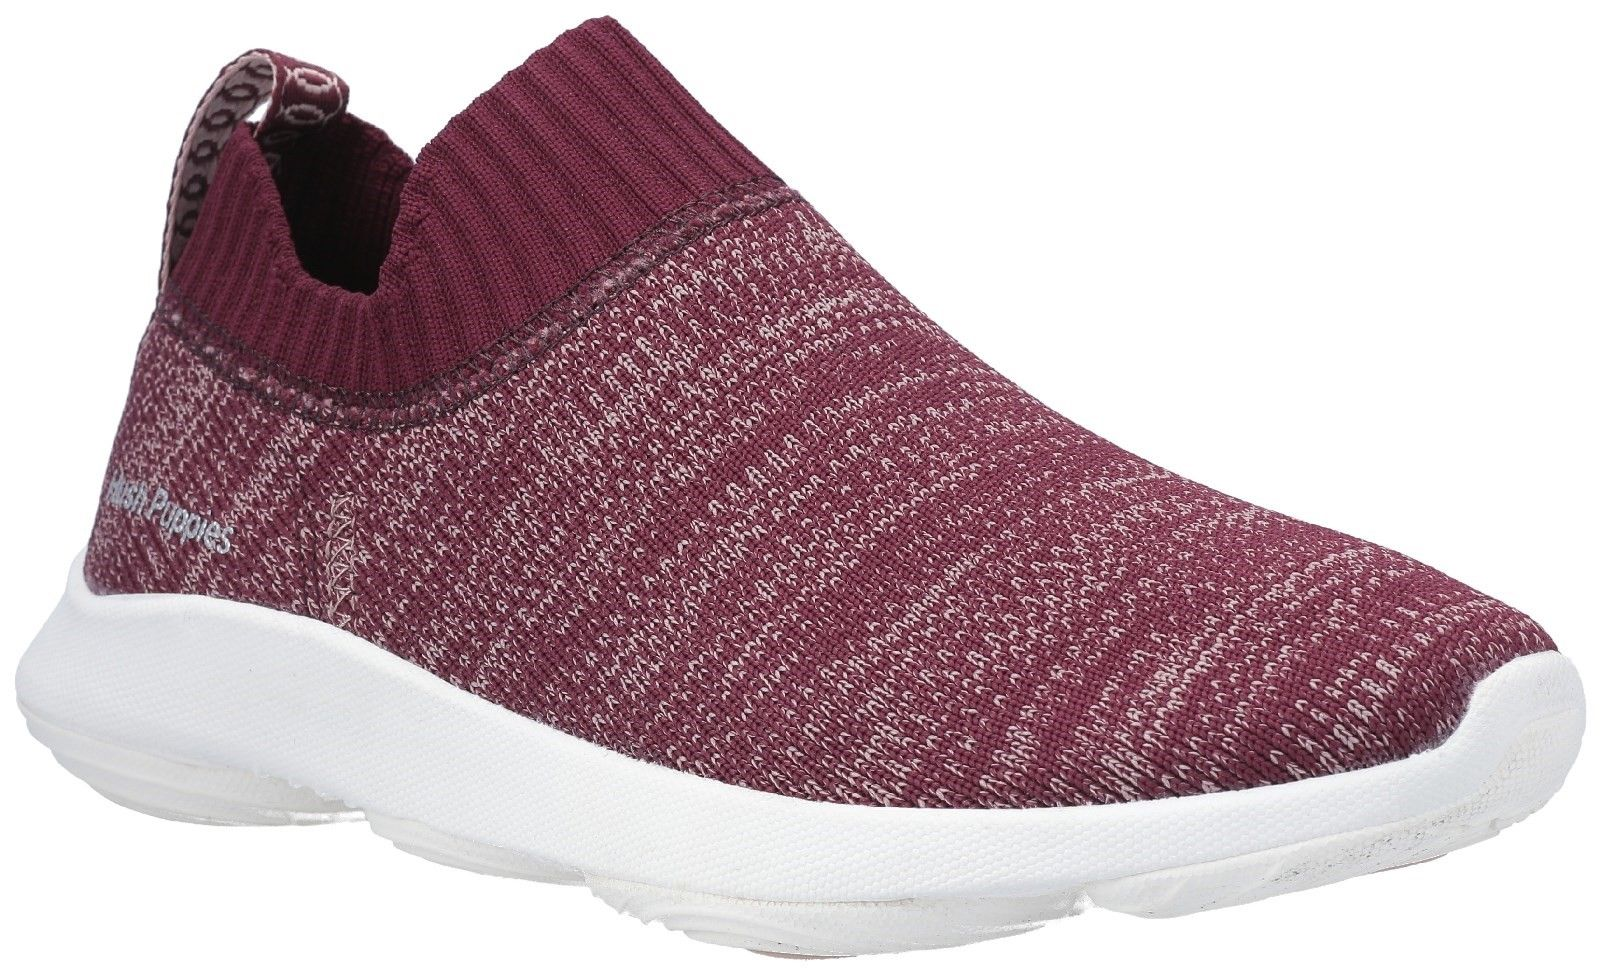 Free BounceMAX Slip On Trainer